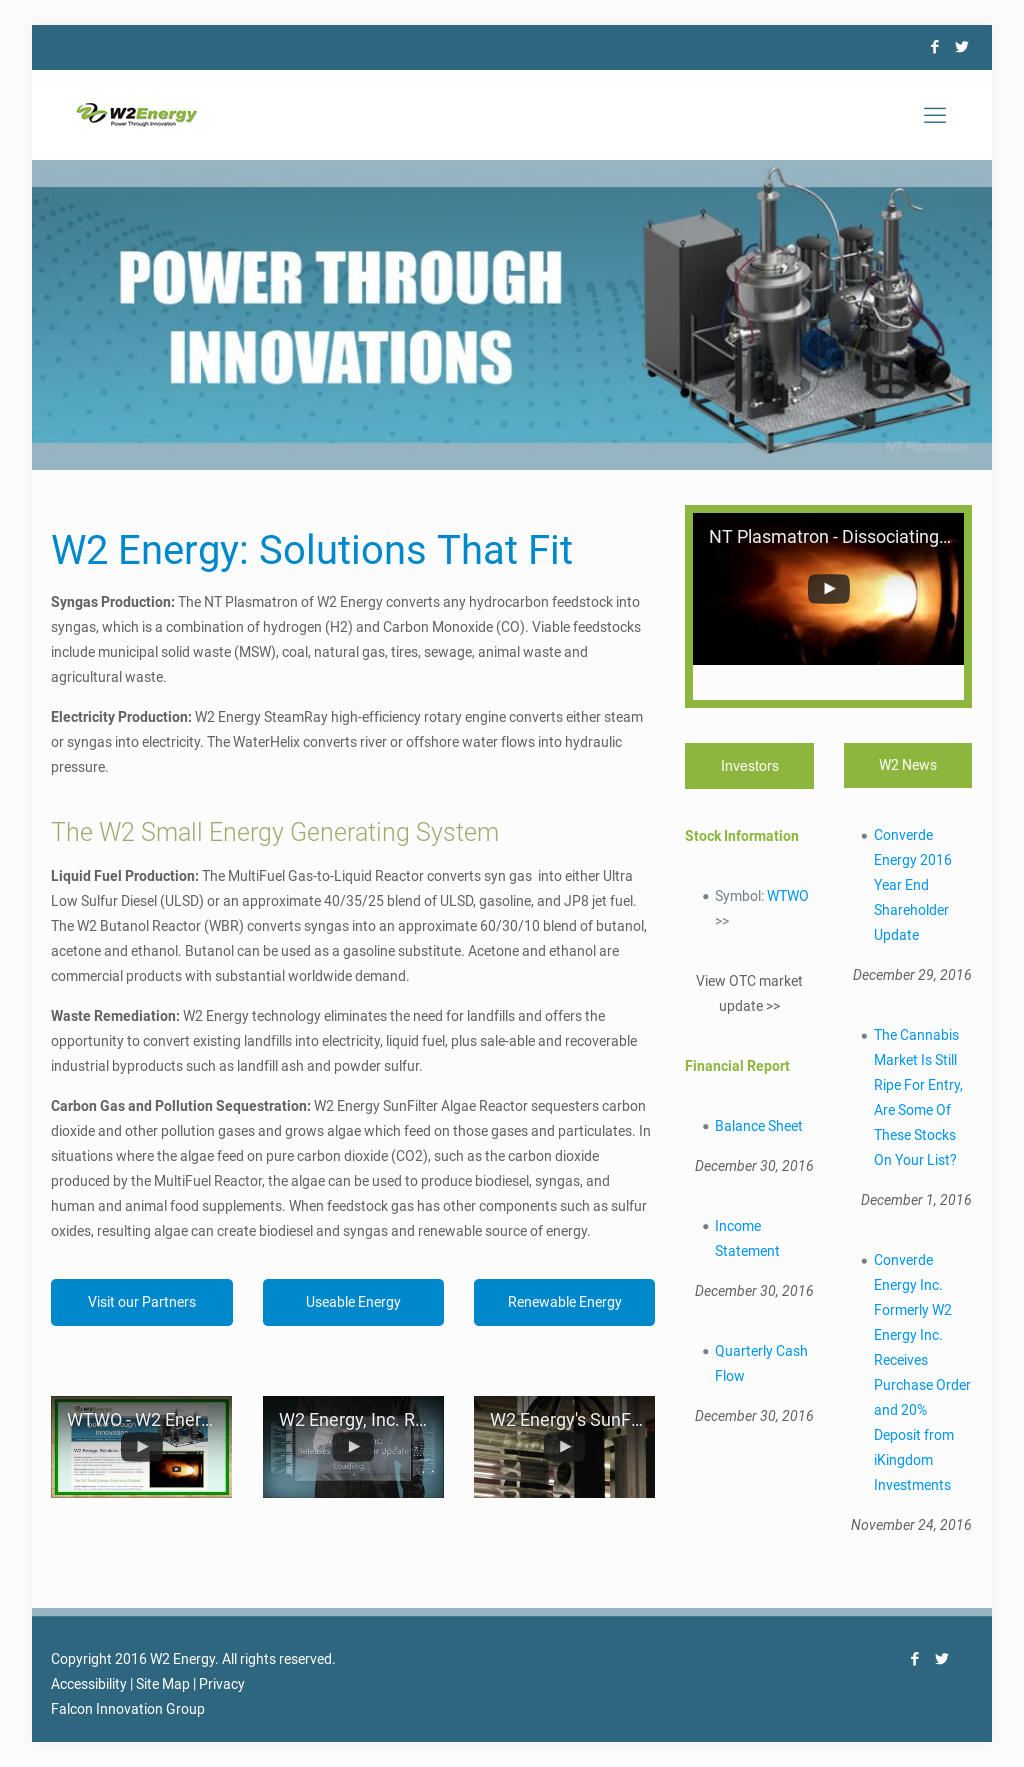 W2 Energy Competitors, Revenue and Employees - Owler Company Profile